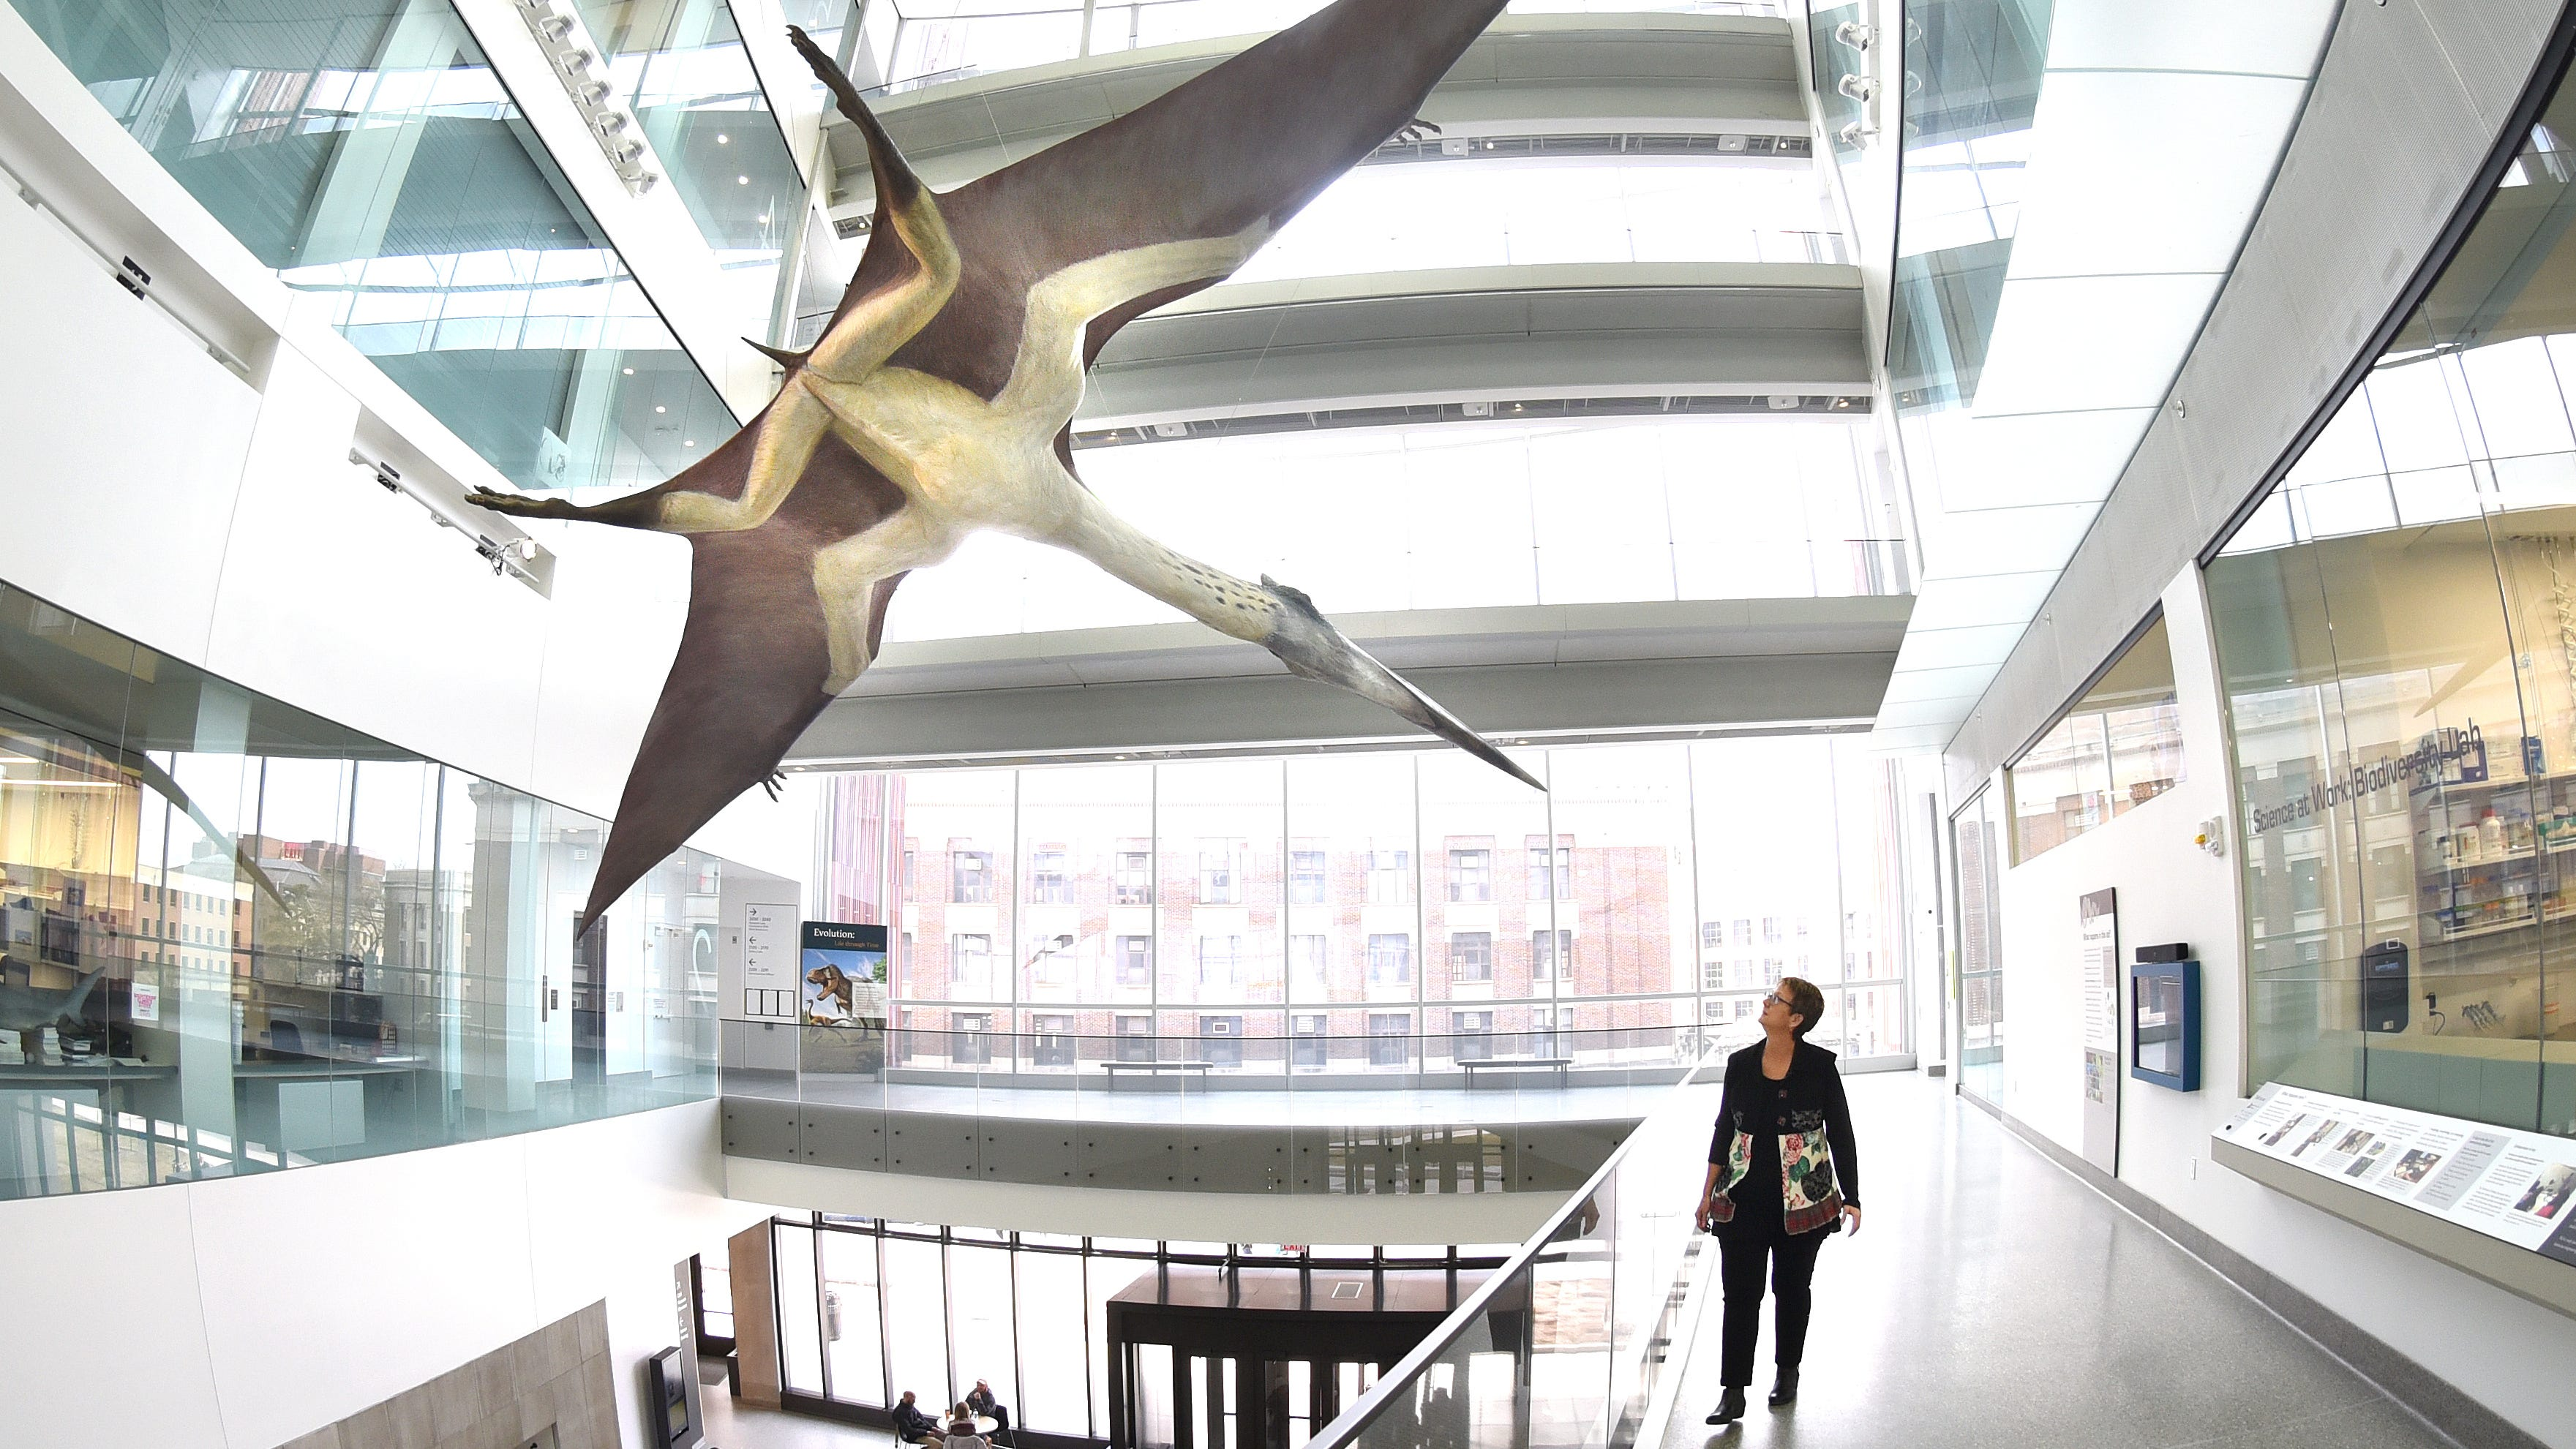 Lori Ann Dick, the museum's marketing and communications manager, gazes at a quetzalcoatlus, the largest flying animal with a 35-foot wingspan, one of the main attractions at the University of Michigan's Natural History Museum.